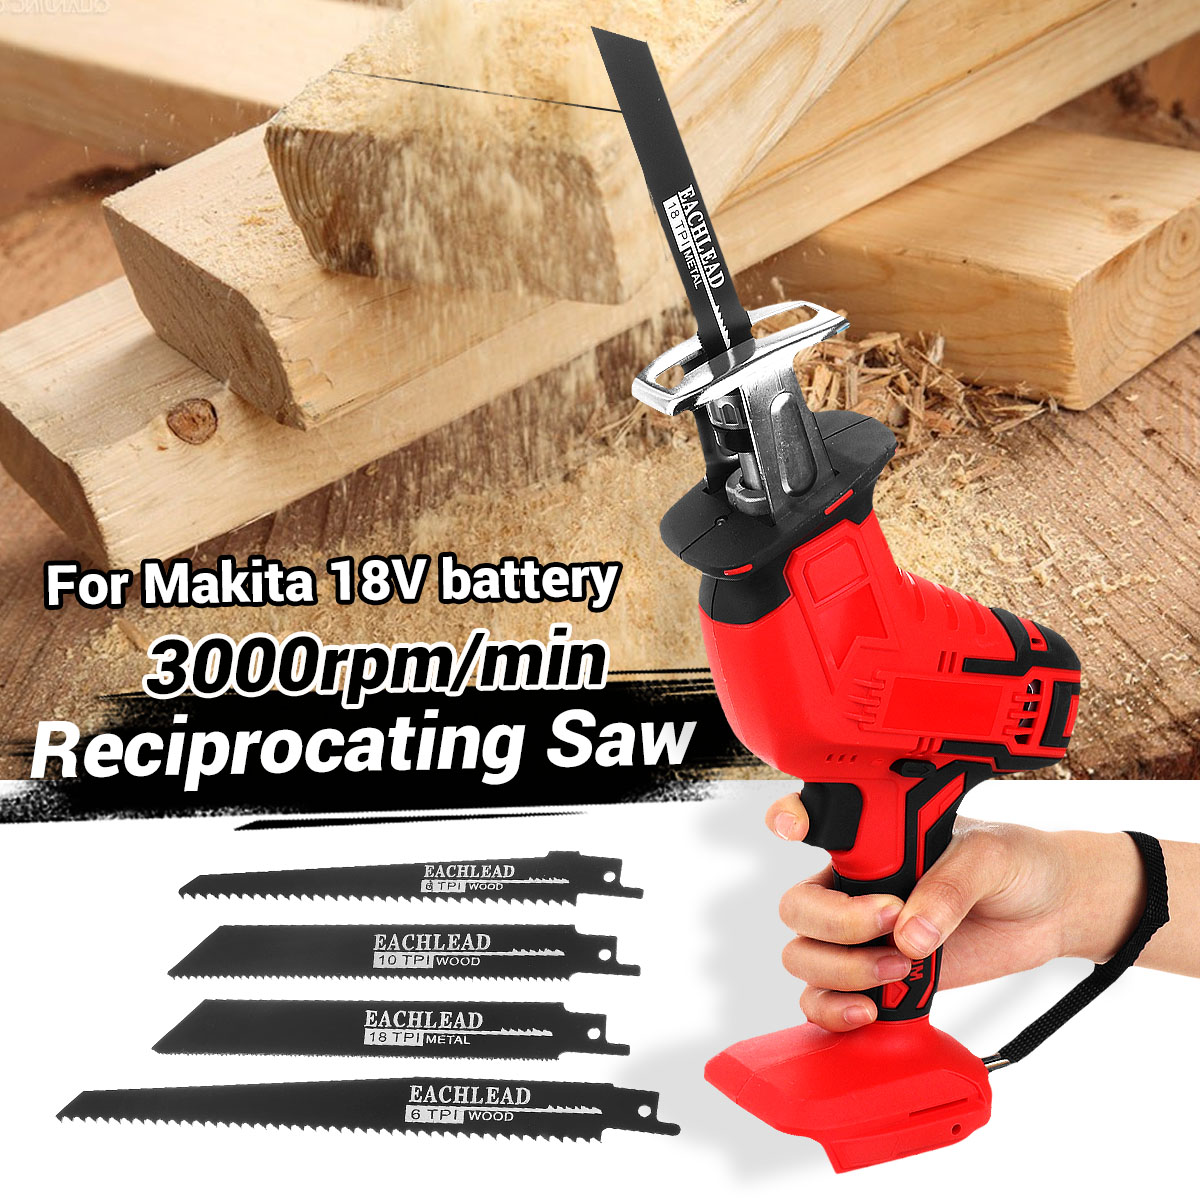 Cordless Mini Electric Saw Reciprocating Saw Body Replacement Woodworking Cutter Tool With 4 Saw Blades For 18V Makita Battery